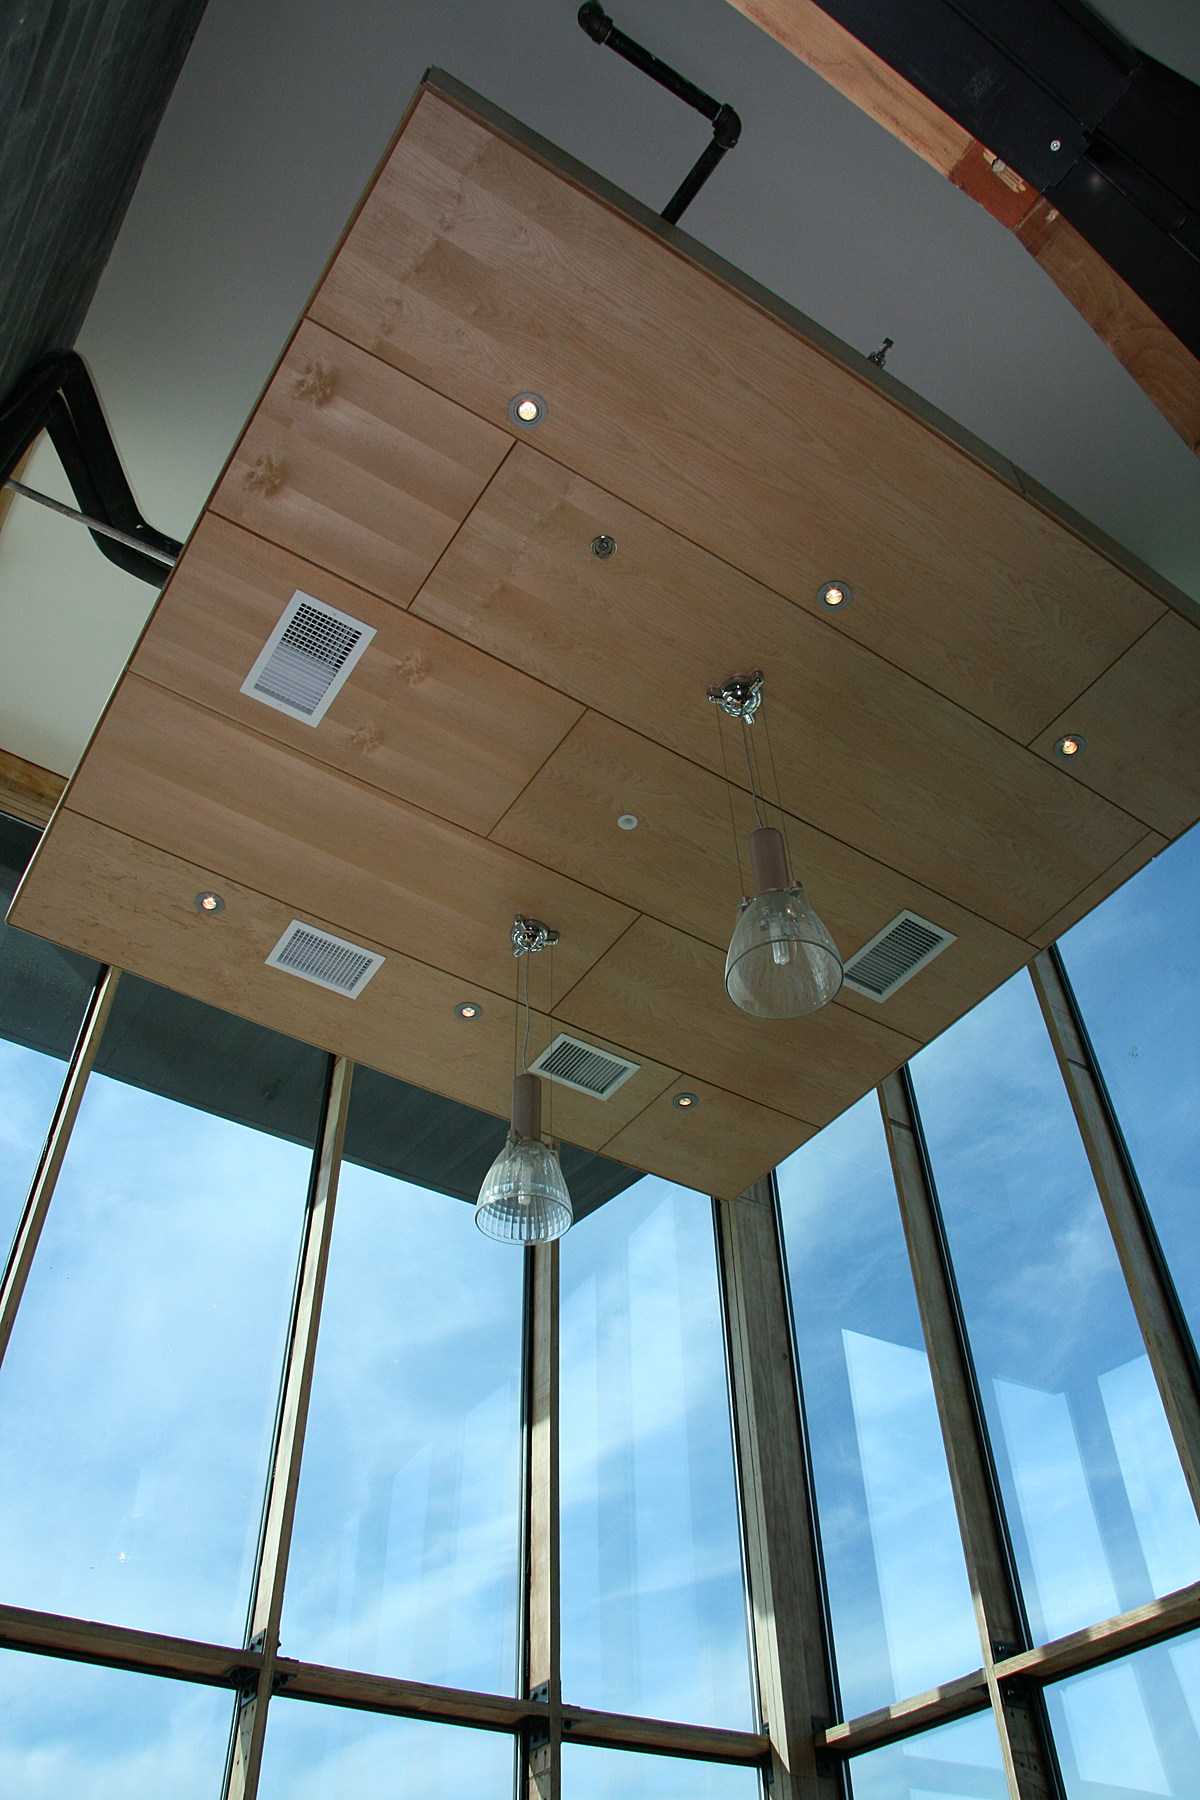 The clearstory of The Green Building is used as an office conference room. The glass has 30% recycled content and the aluminum frame around each window has 70% recycled content.